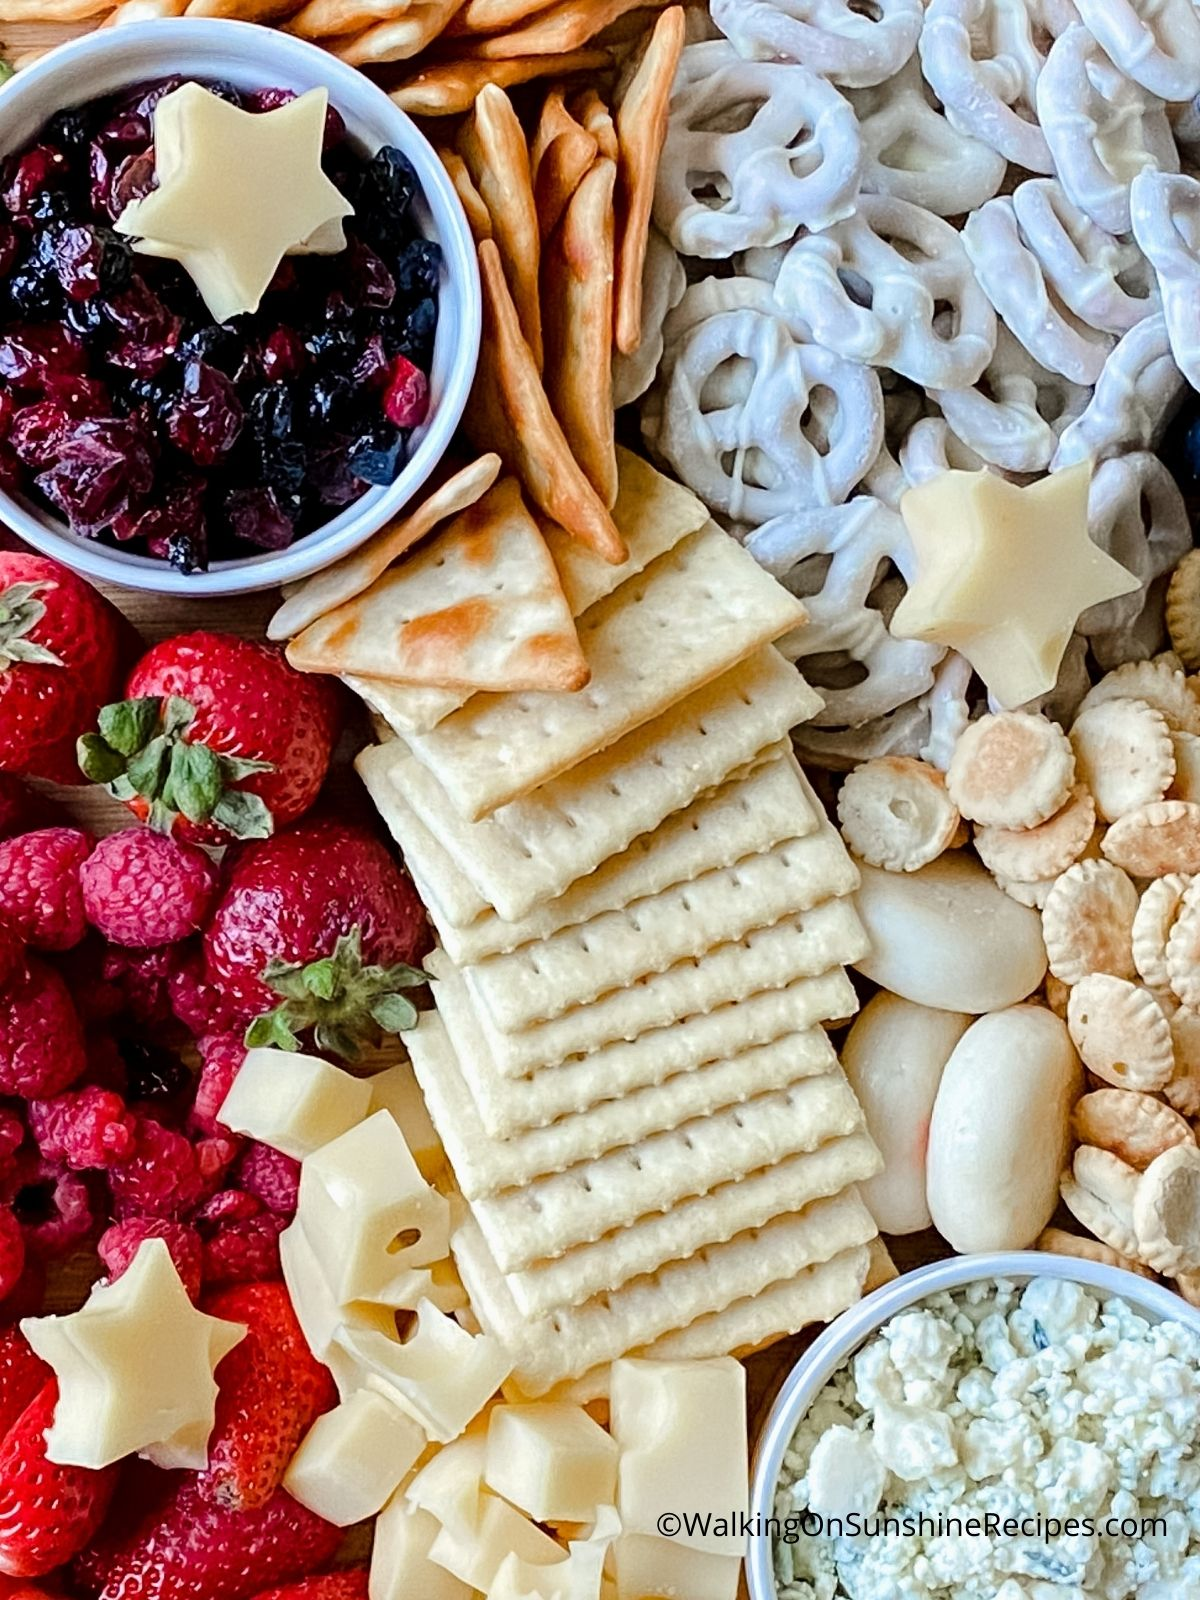 fruit, chocolate covered pretzels, crackers and cheeses on a board.